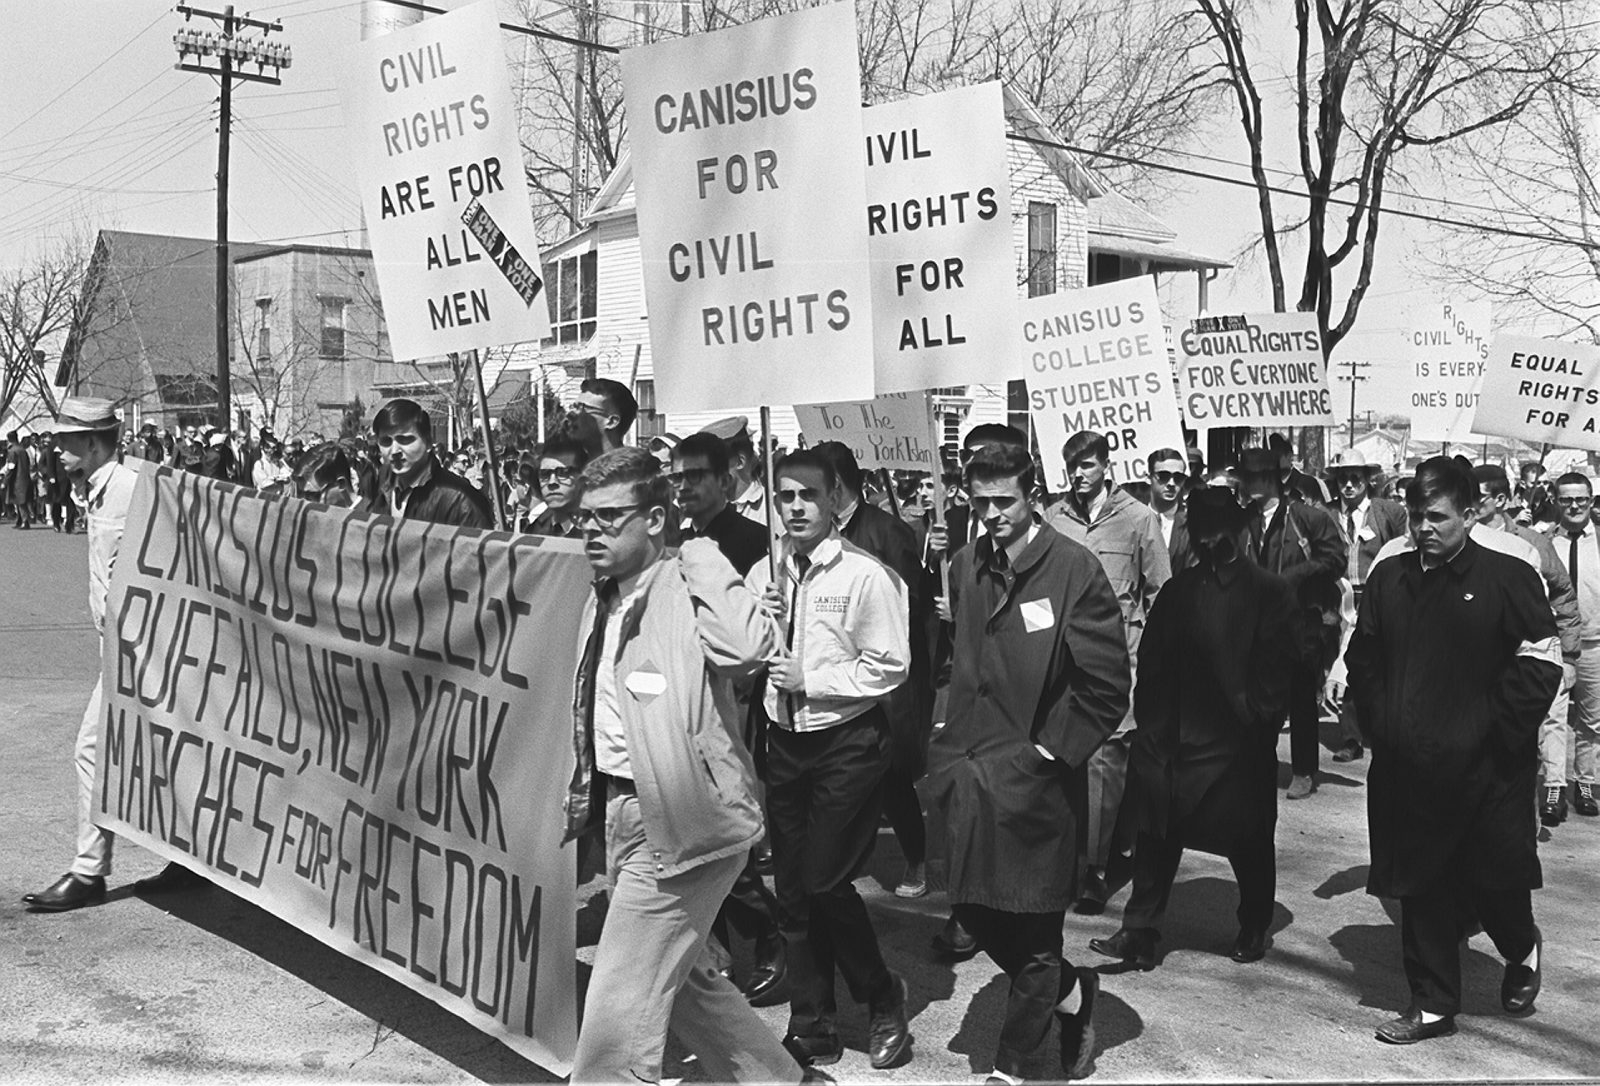 Canisius protesters carry placards during the 54-mile march from Selma to Montgomery, Ala., 50 years ago. (Photo by Lynn Ball/The Ottawa Citizen)